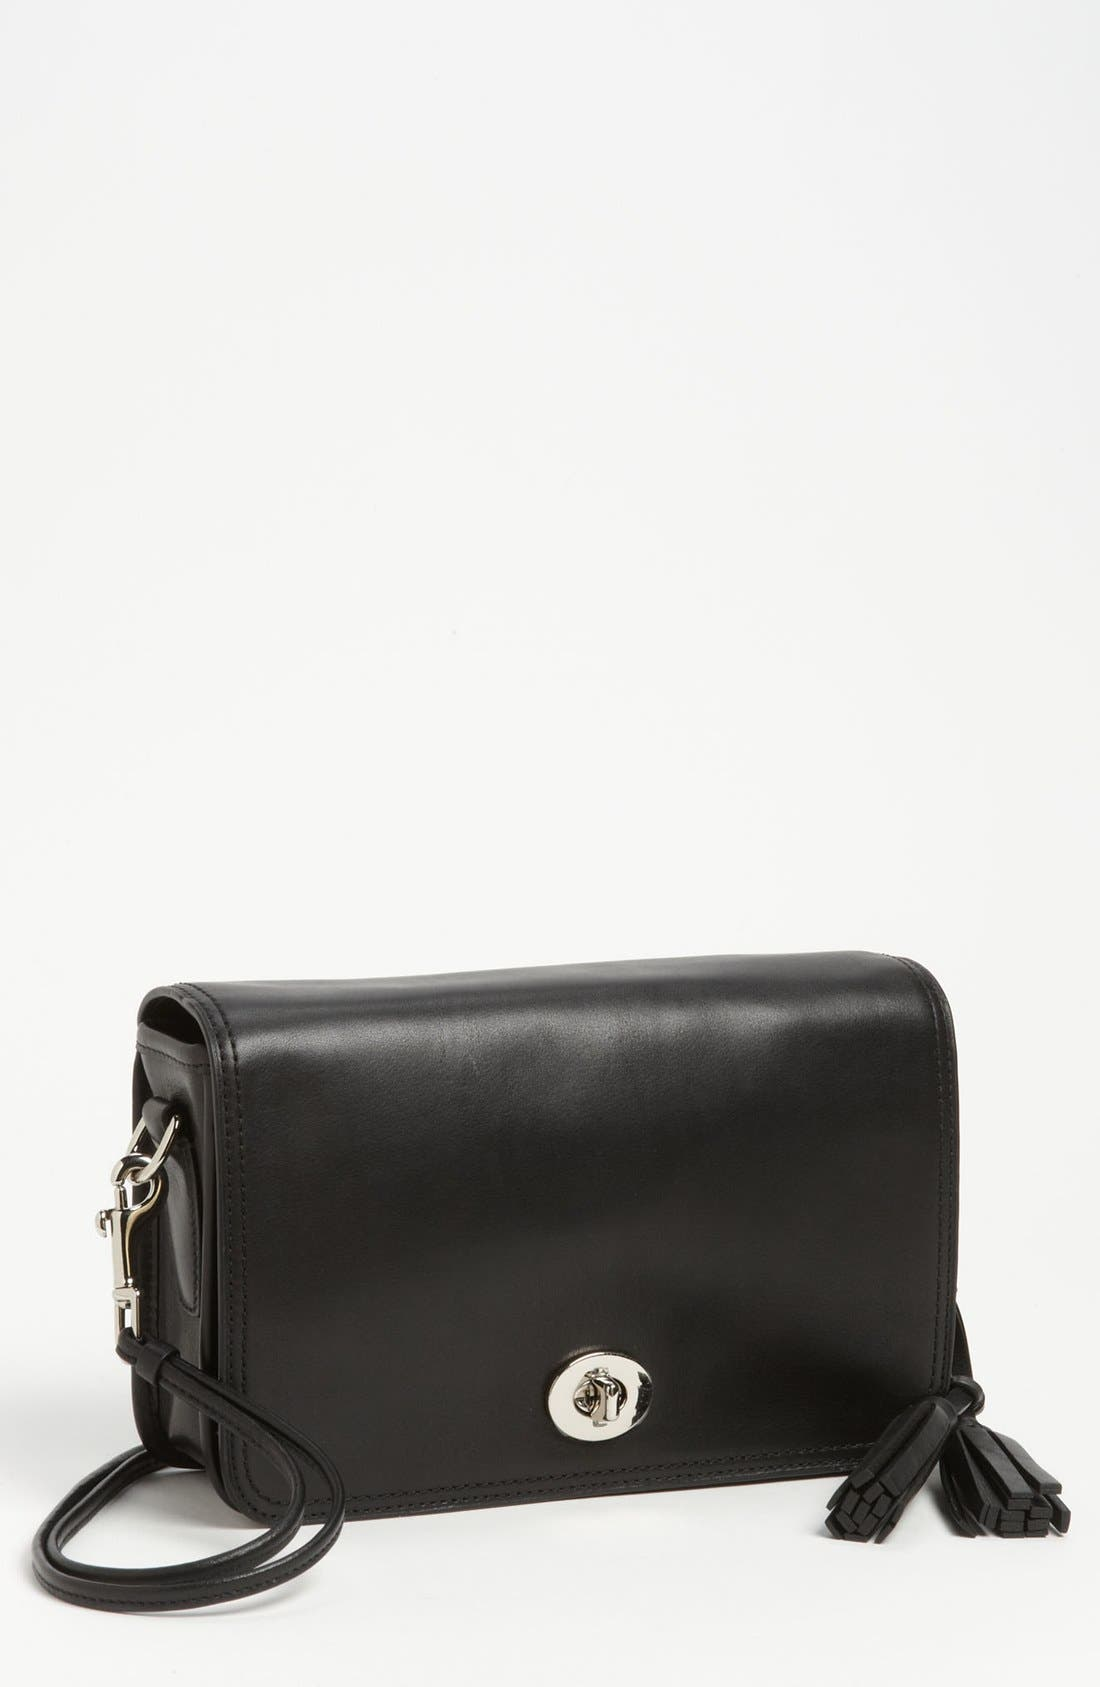 Alternate Image 1 Selected - COACH 'Legacy - Penelope' Leather Crossbody Bag